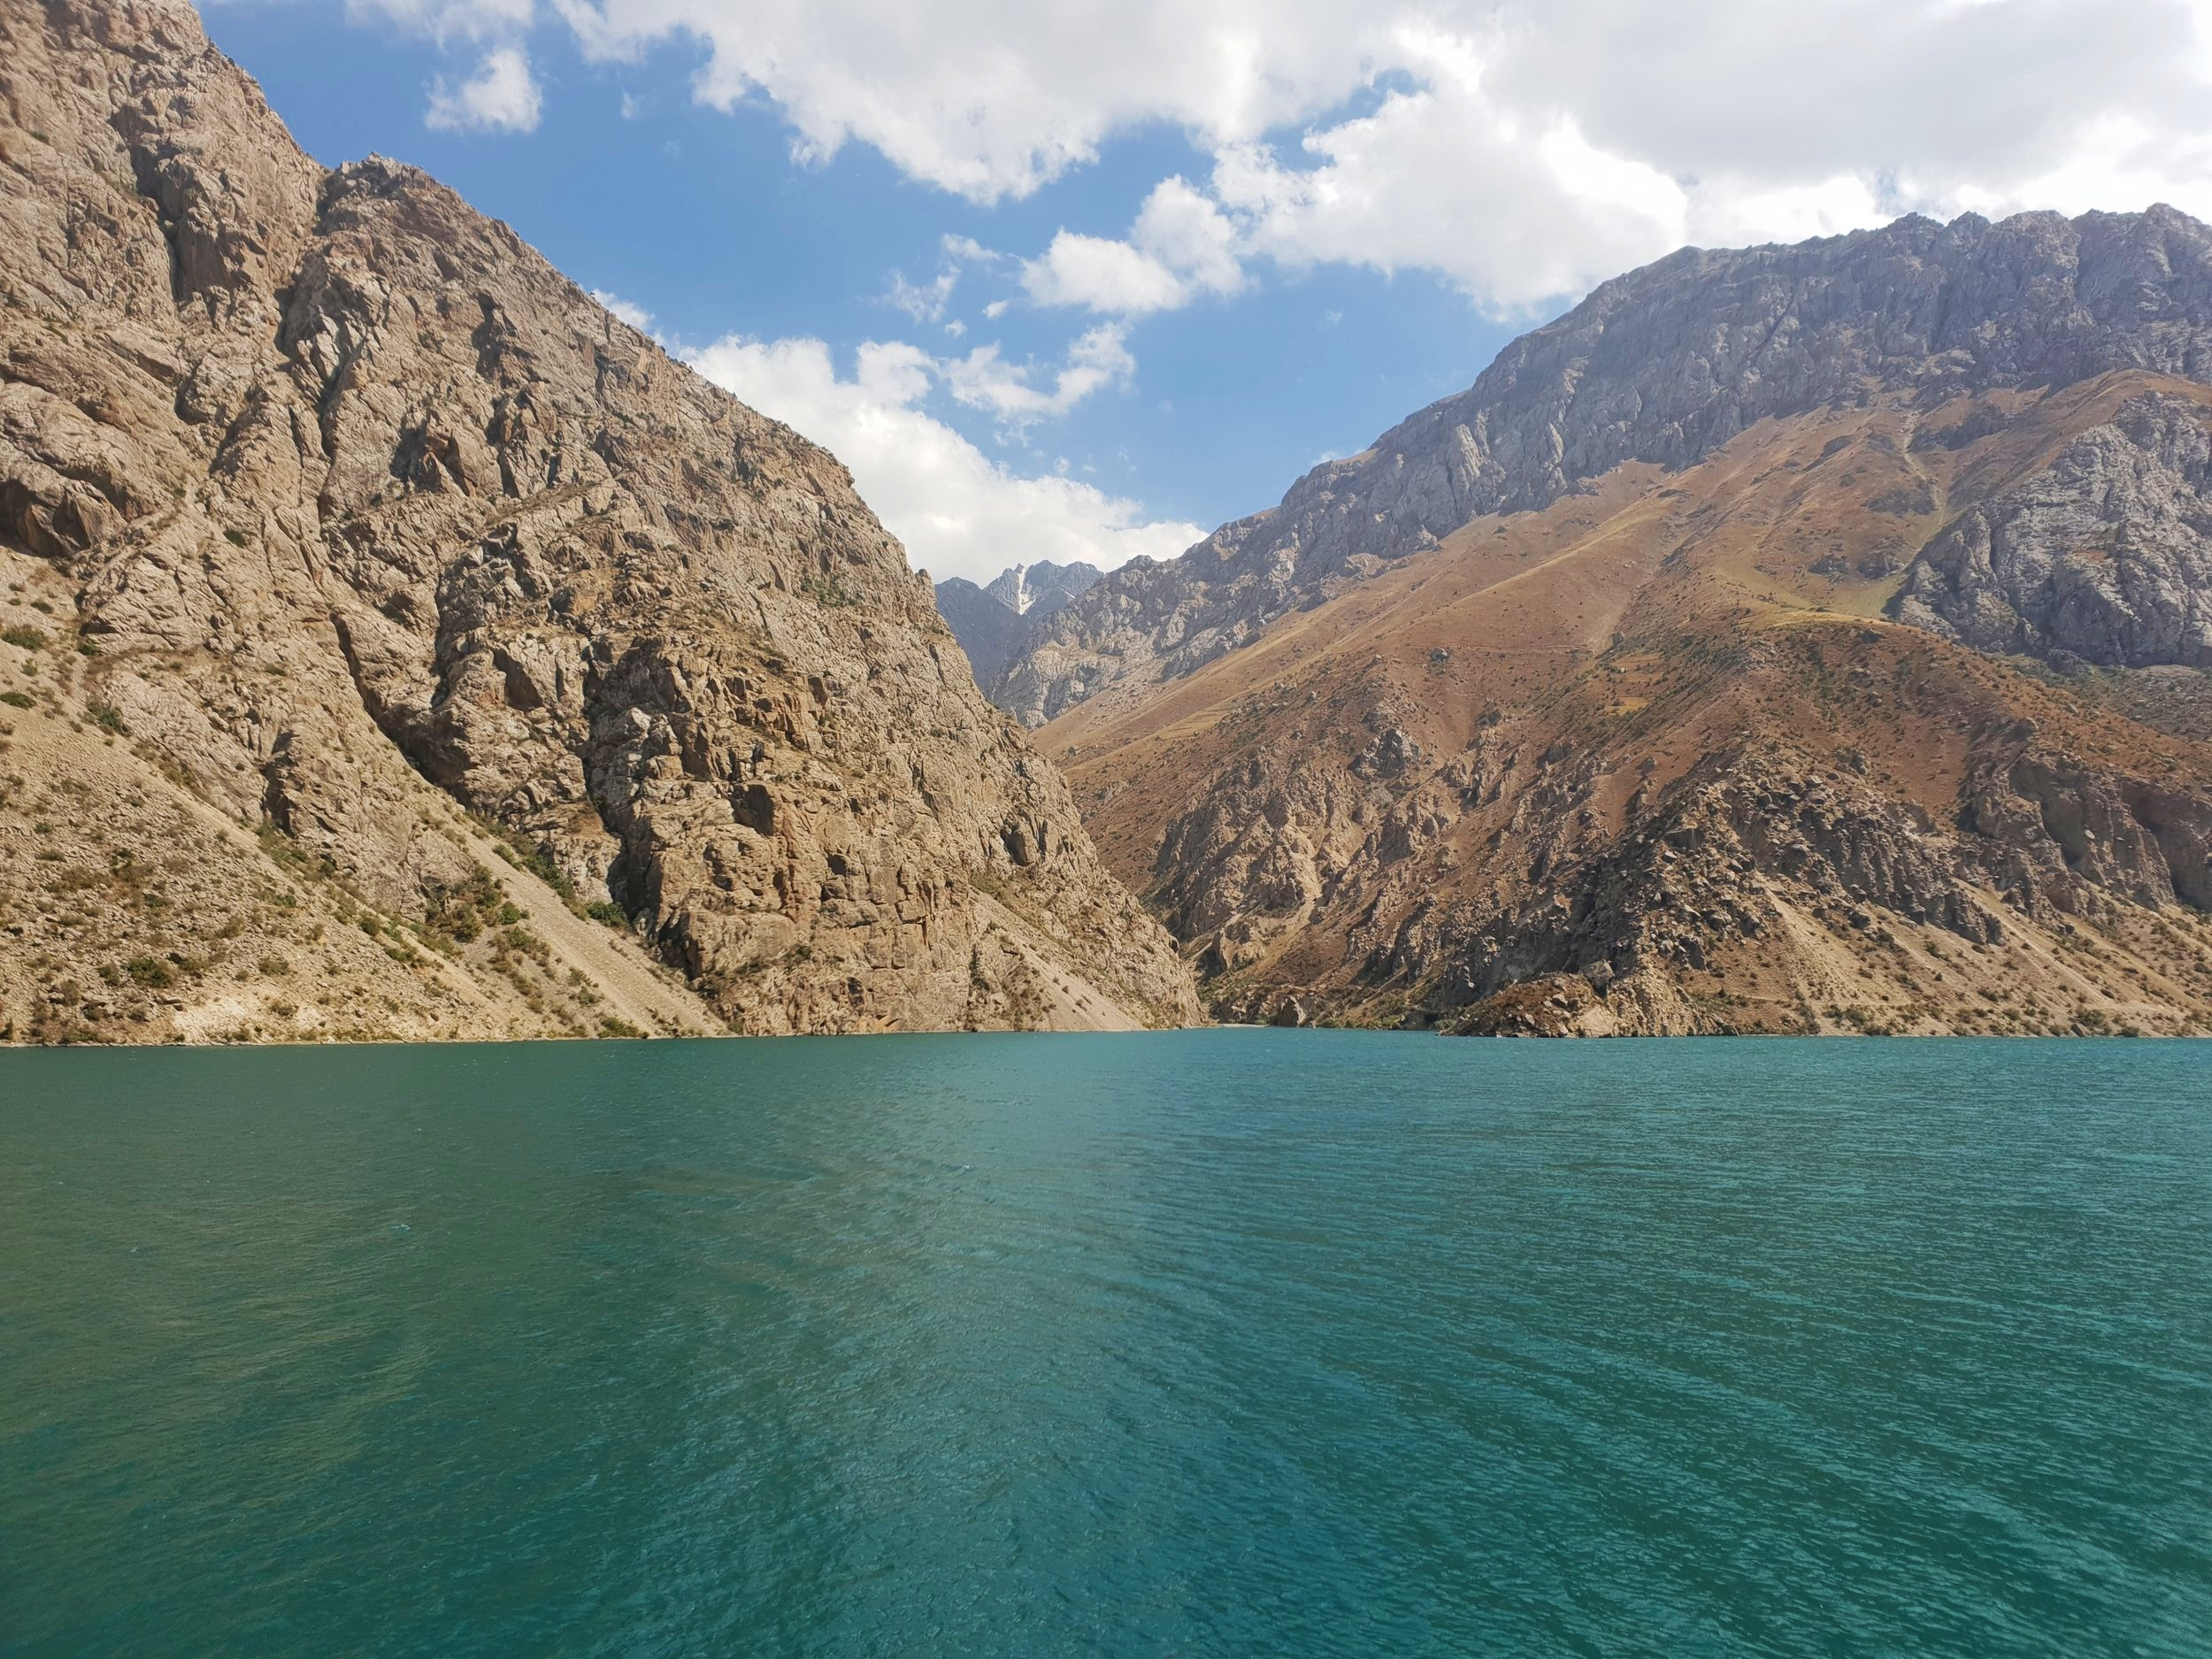 Stunning scenery like this is commonplace in Tajikistan. The peak in the second photo, taken in the 'Seven Lakes' region, is well over 6,000 metres. Or around five times the height of the UK's tallest 'mountain', Ben Nevis.